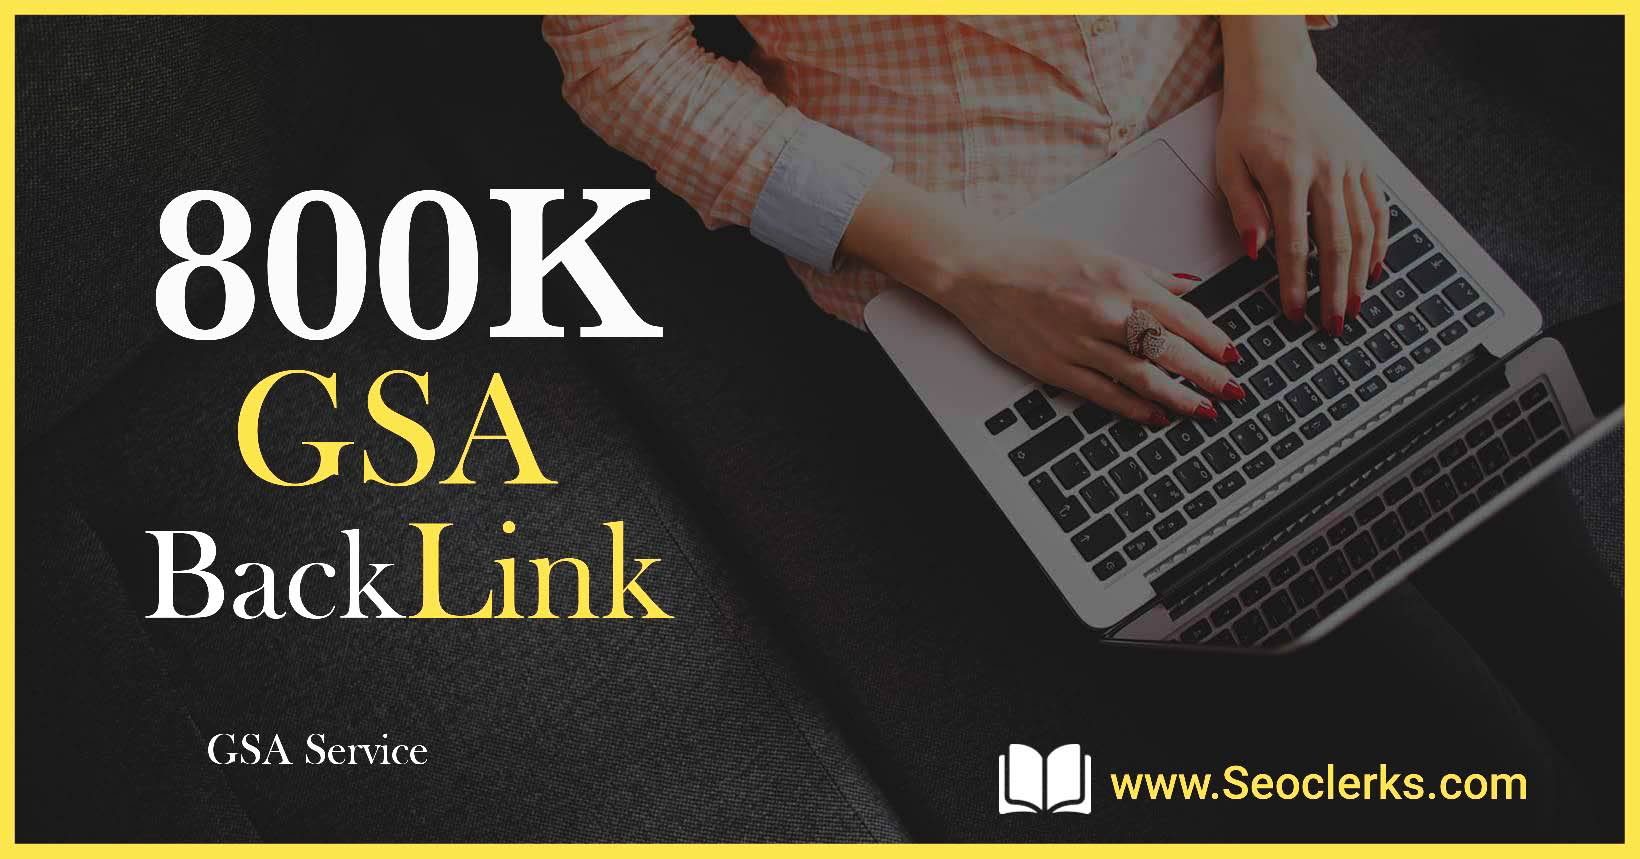 800K SEO GSA SER High Quality Backlinks for Google Ranking